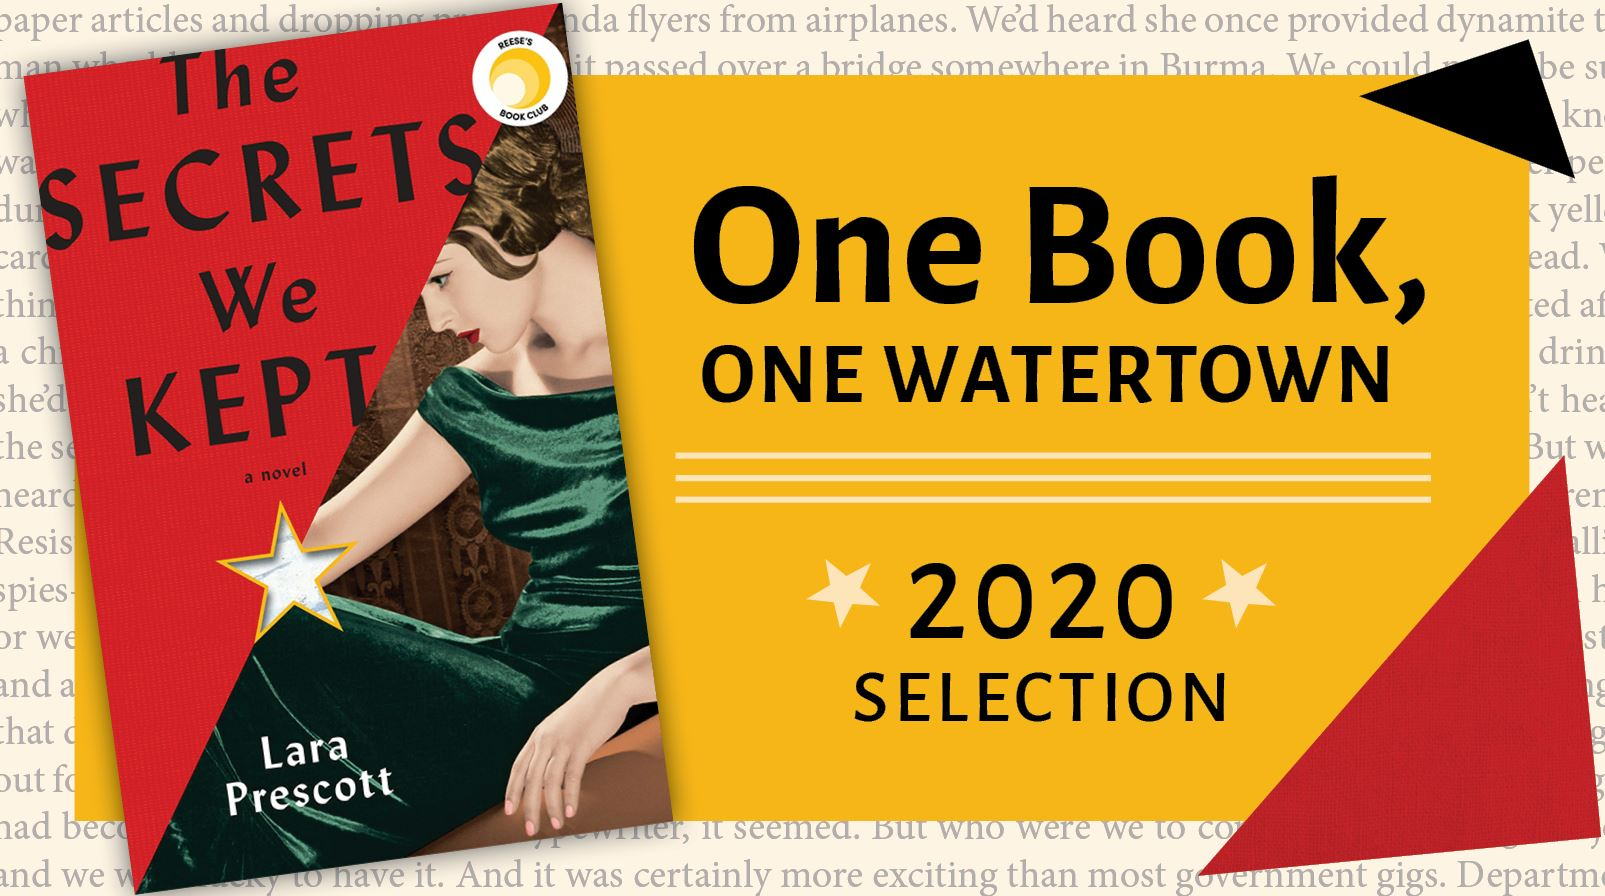 "Banner shows the cover of the book The Secrets We Kept by Lara Prescott with the text, ""One Book,"